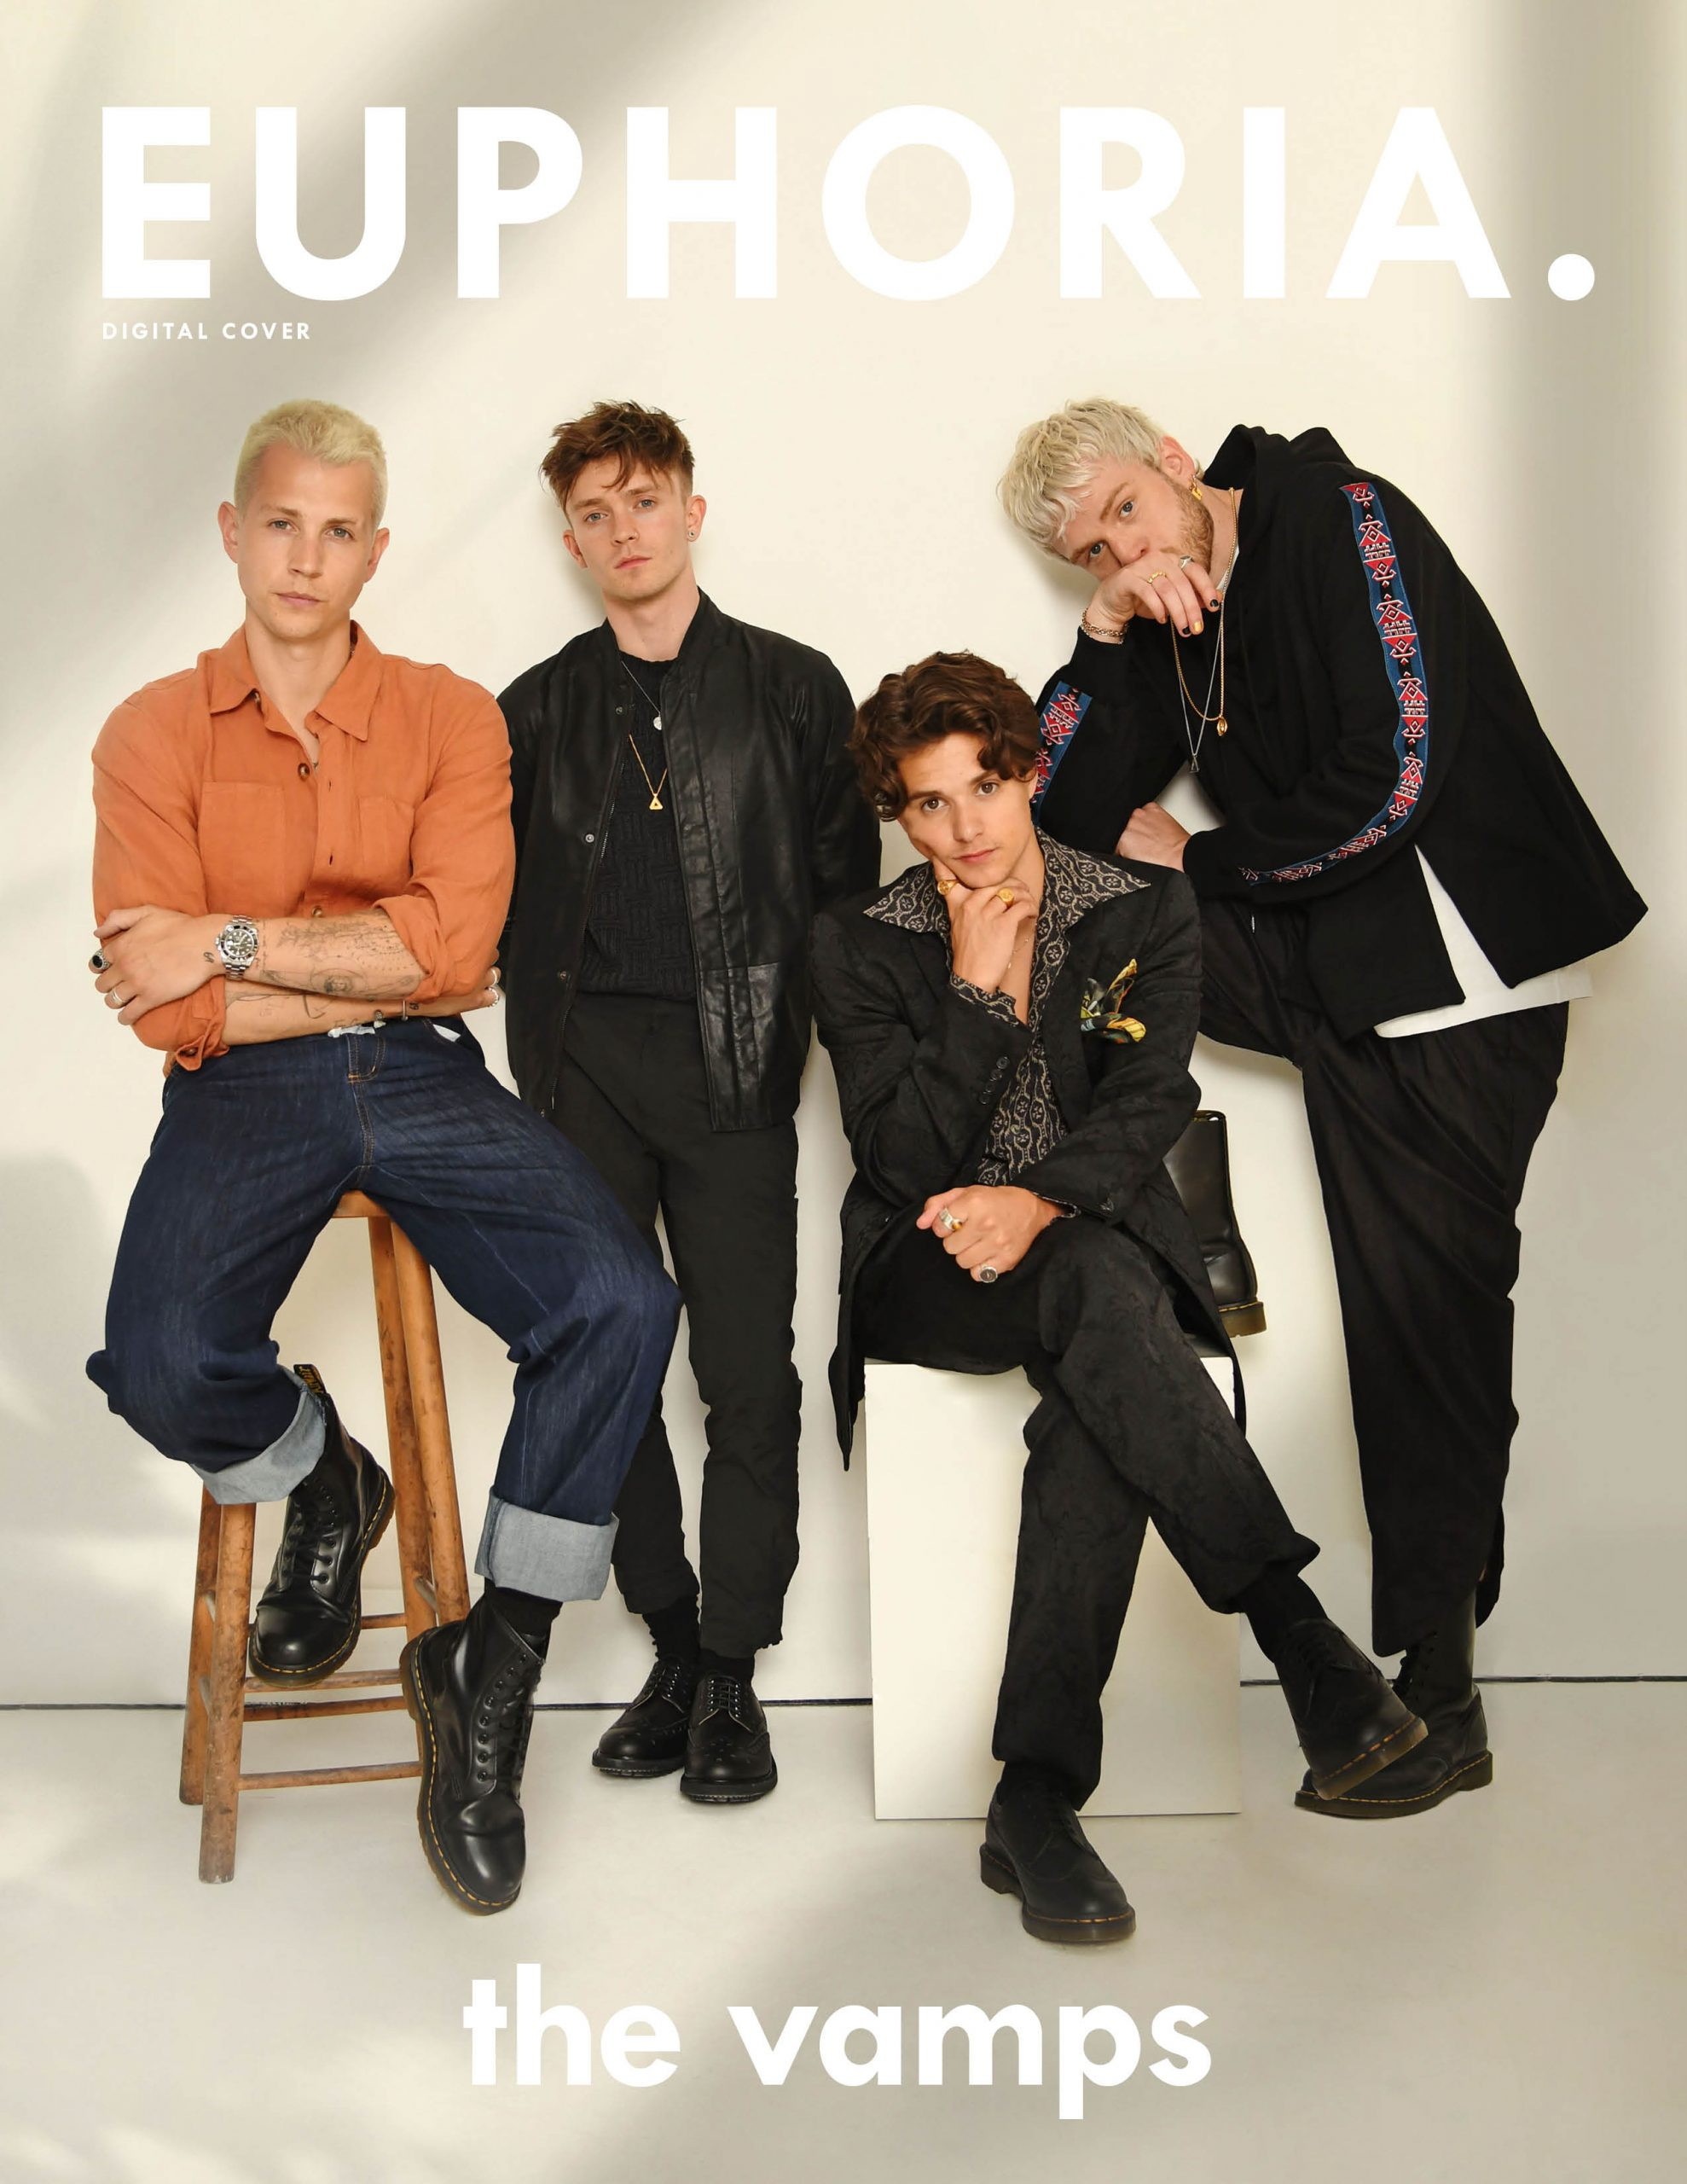 the vamps digital cover interview